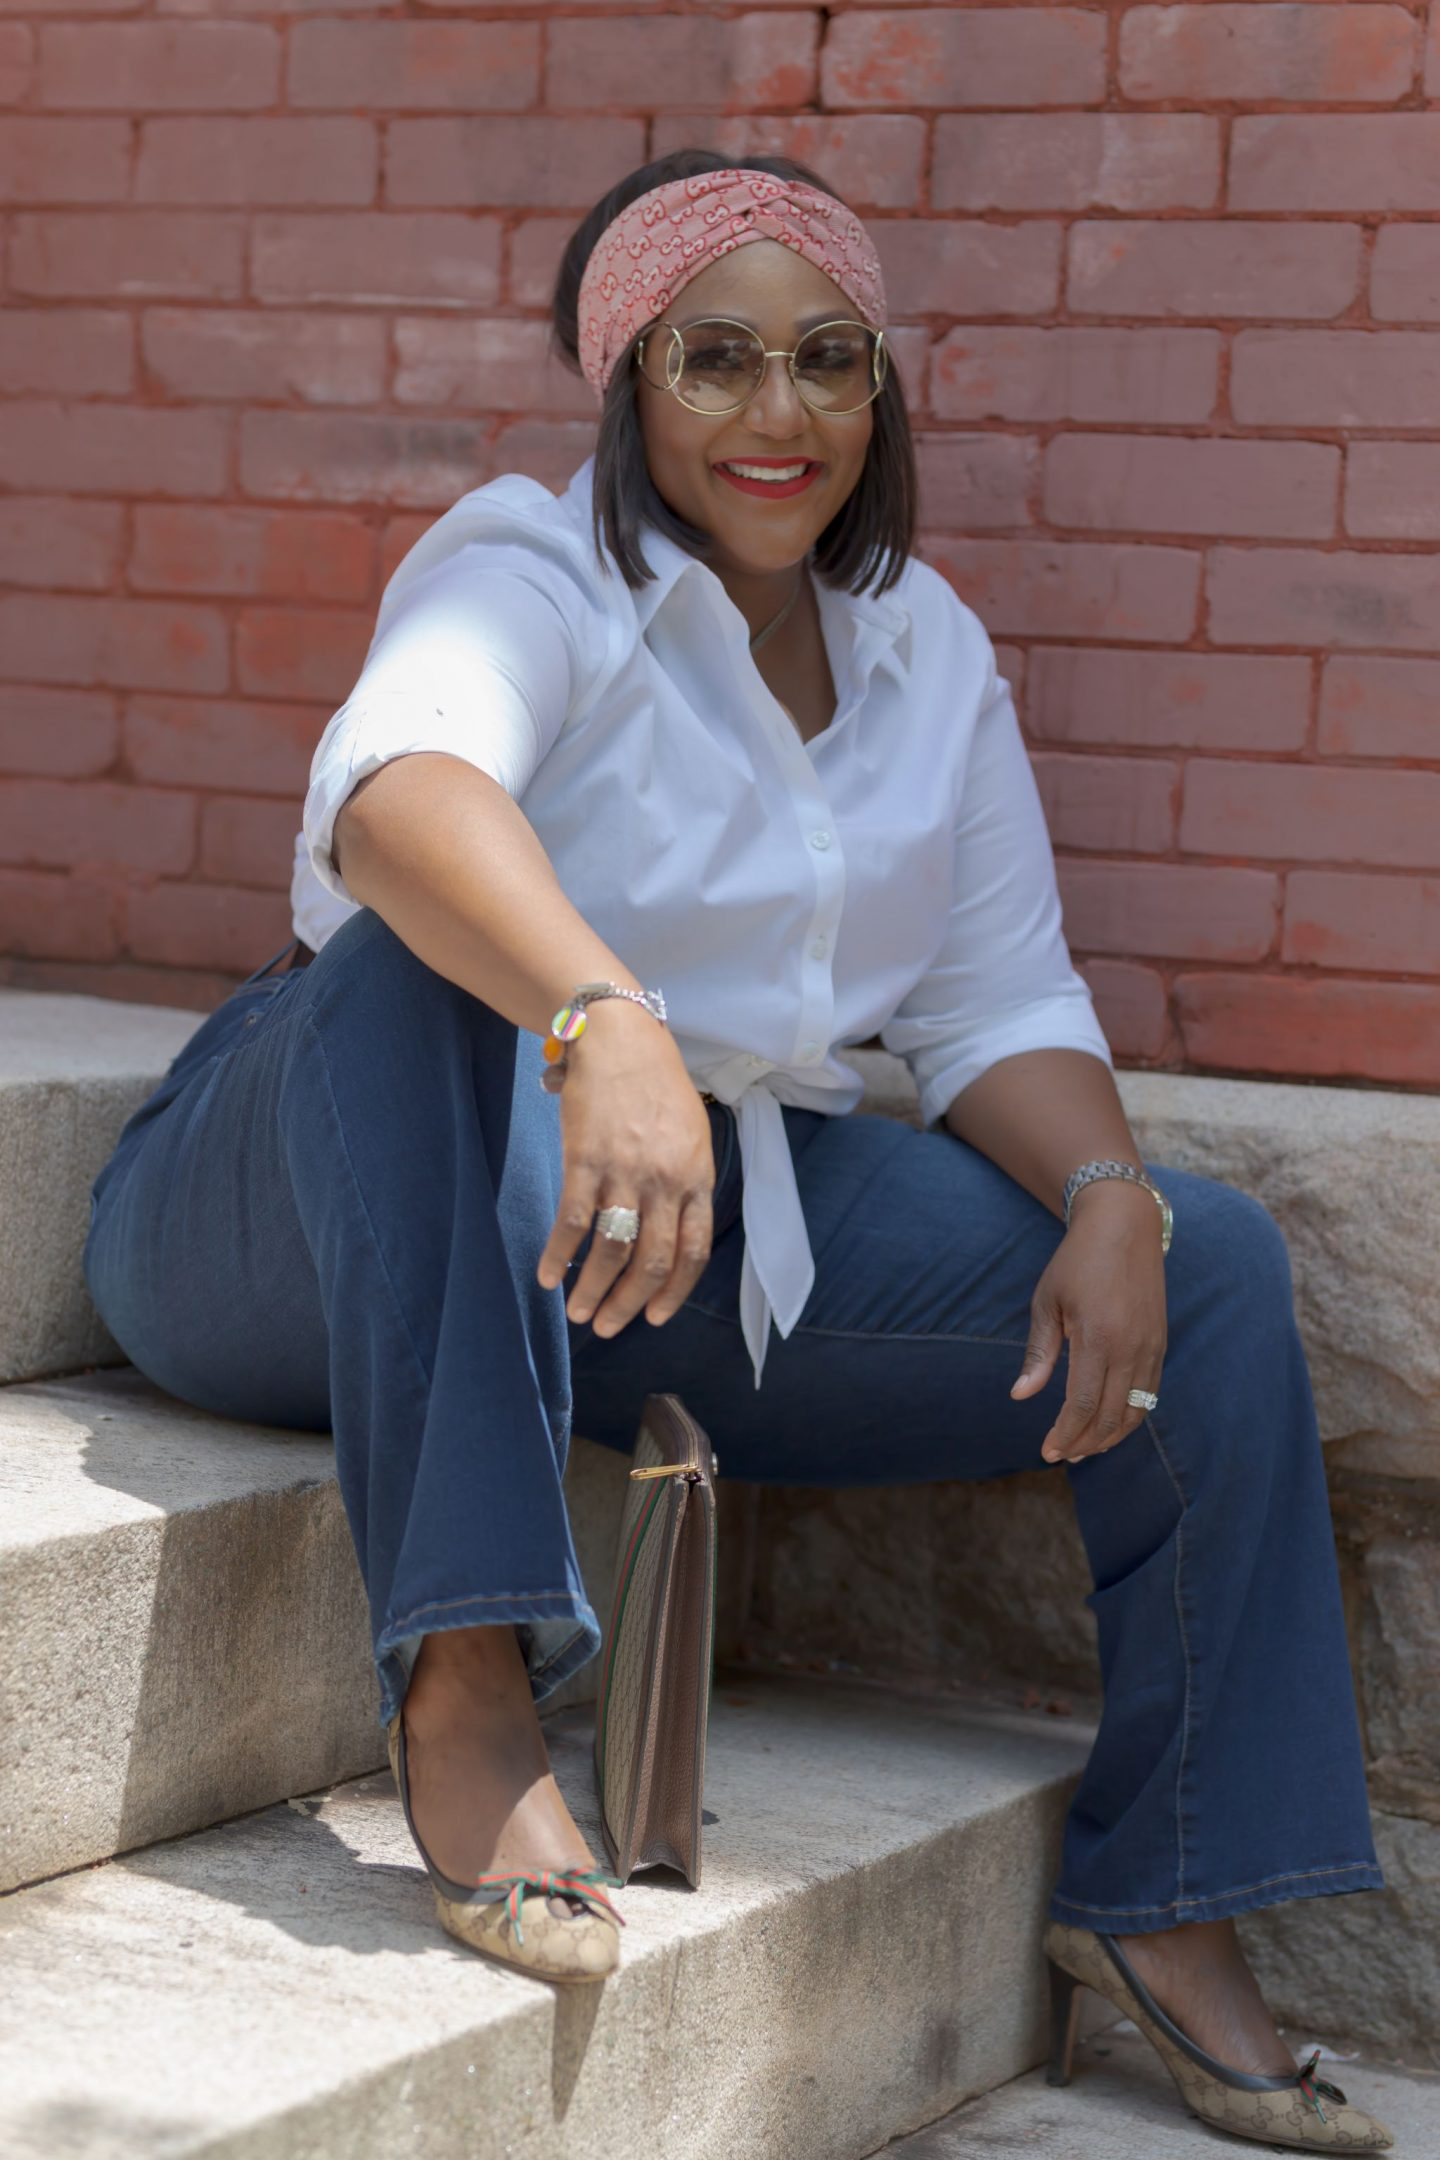 Influencer Nikki Free sitting on stairs wearing Lane Bryant Flex Magic Waistband Jean